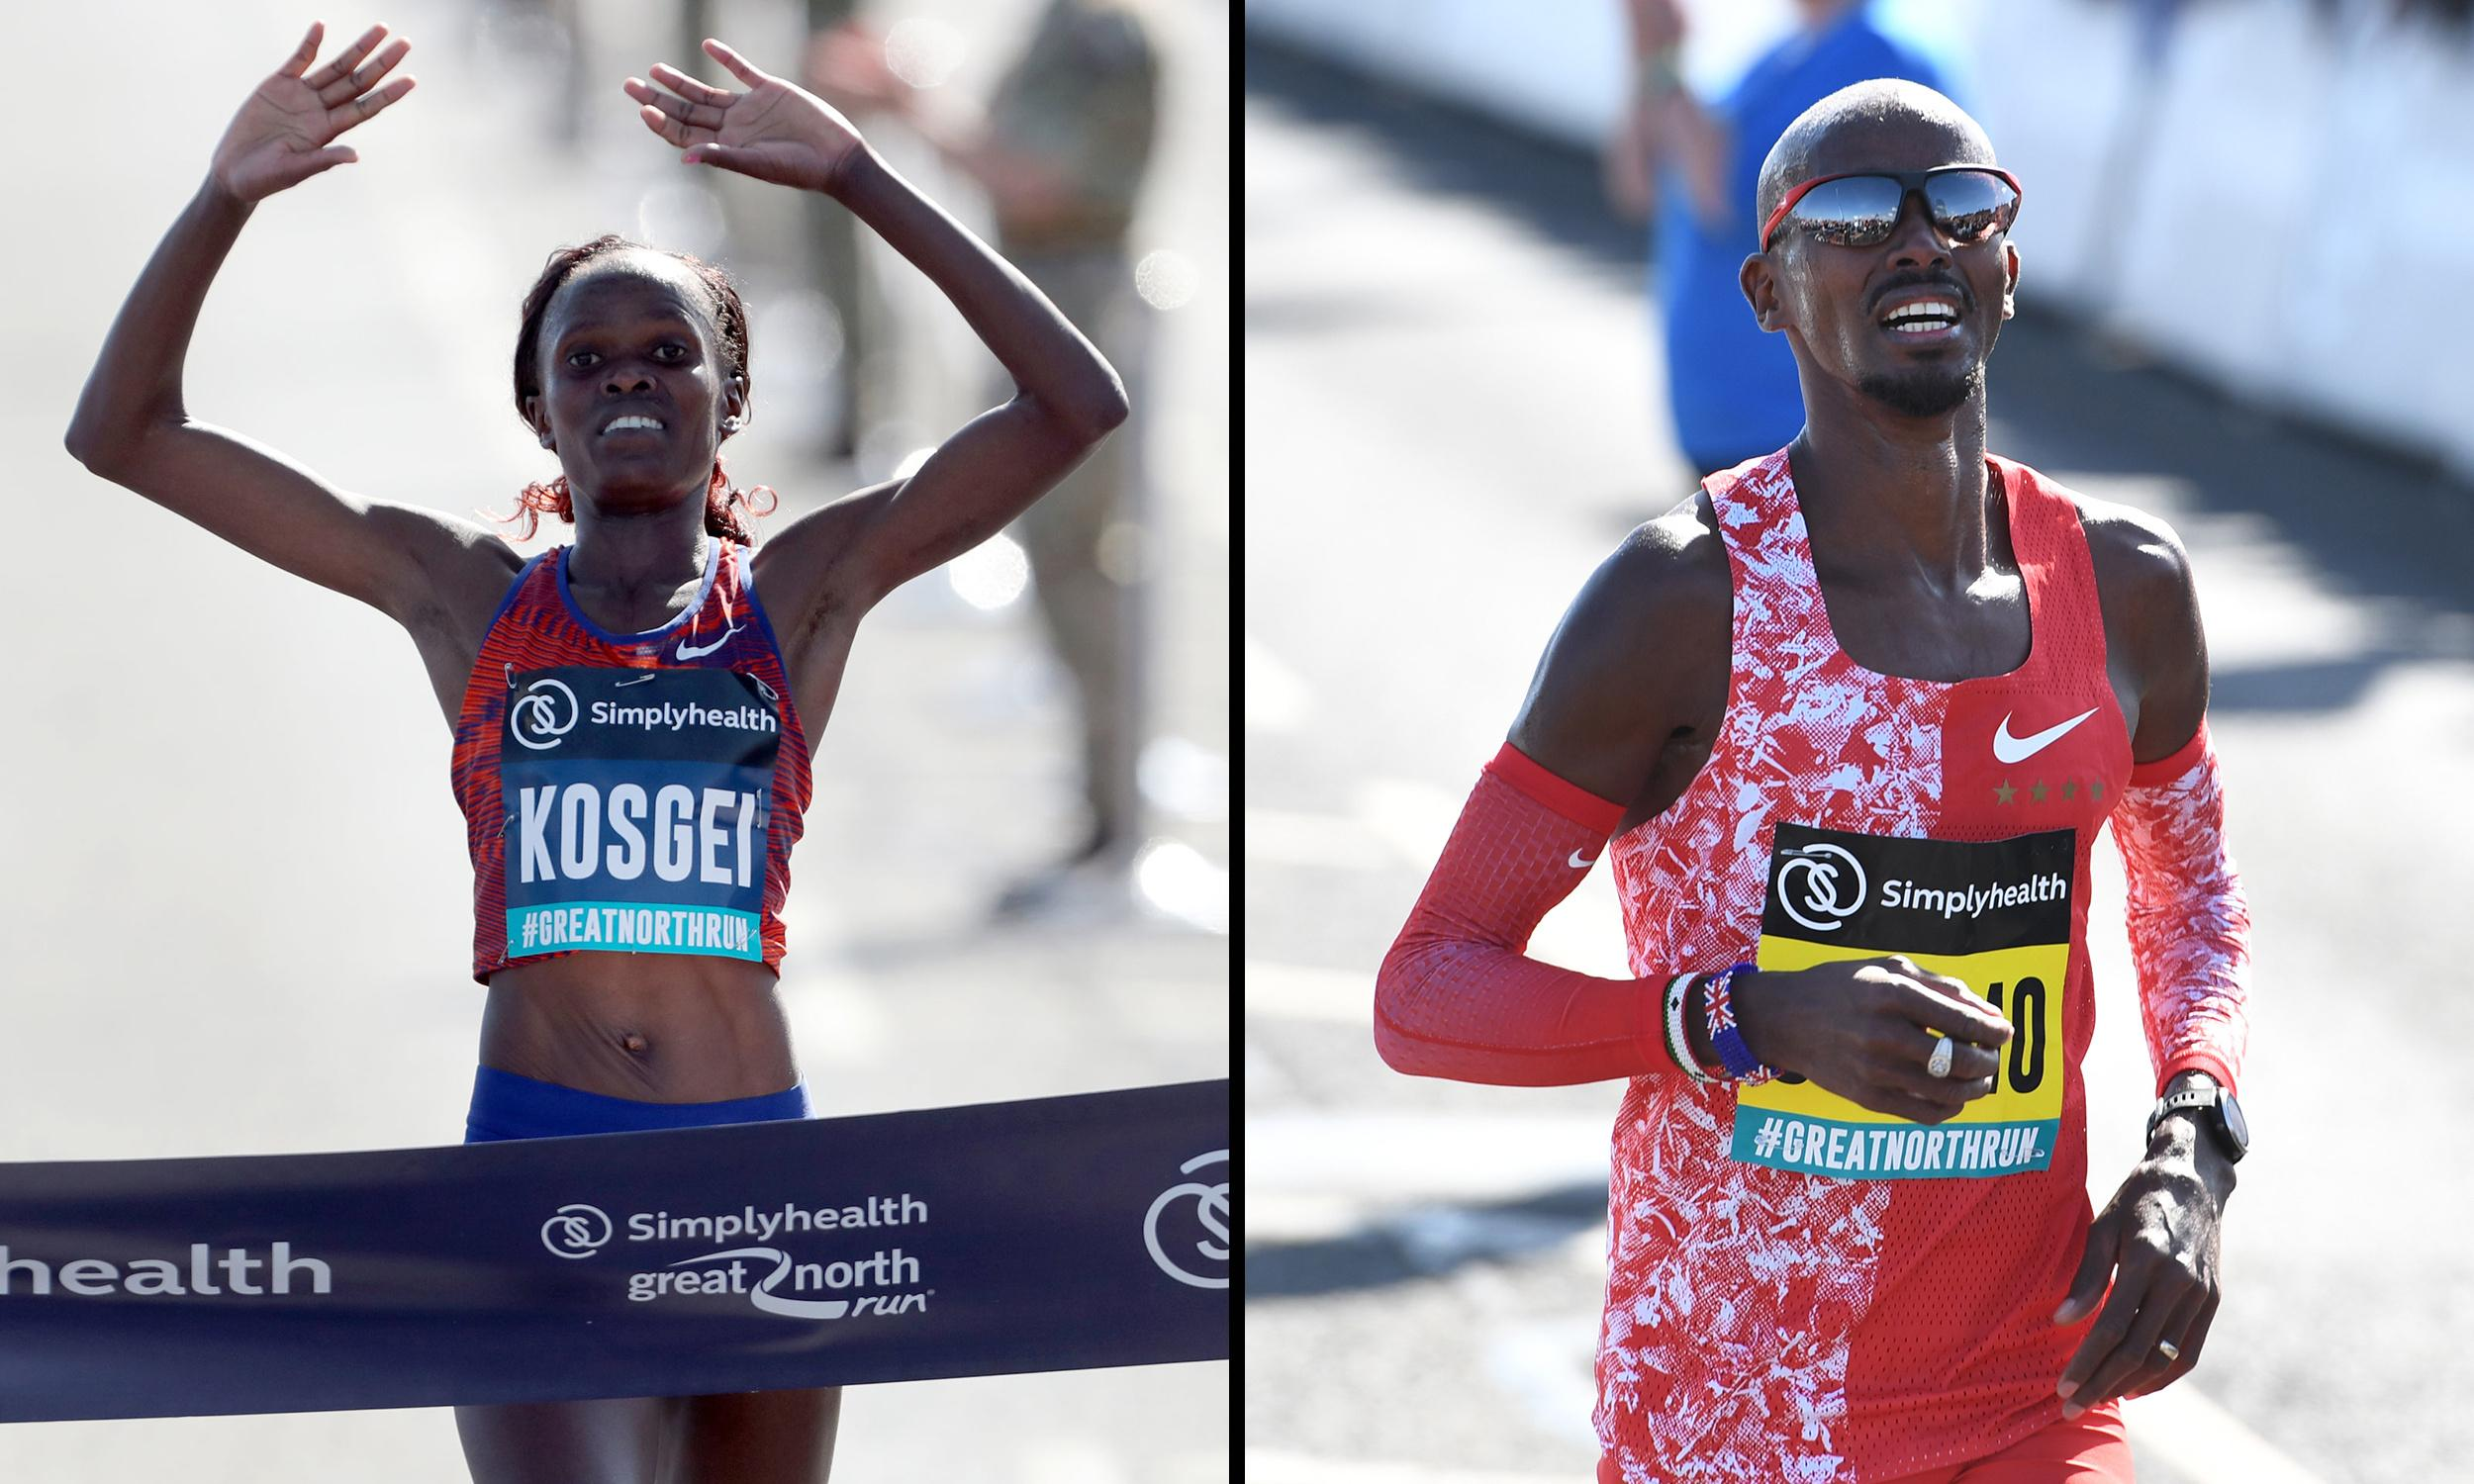 Kosgei breaks half marathon record at Great North Run as Farah wins sixth title